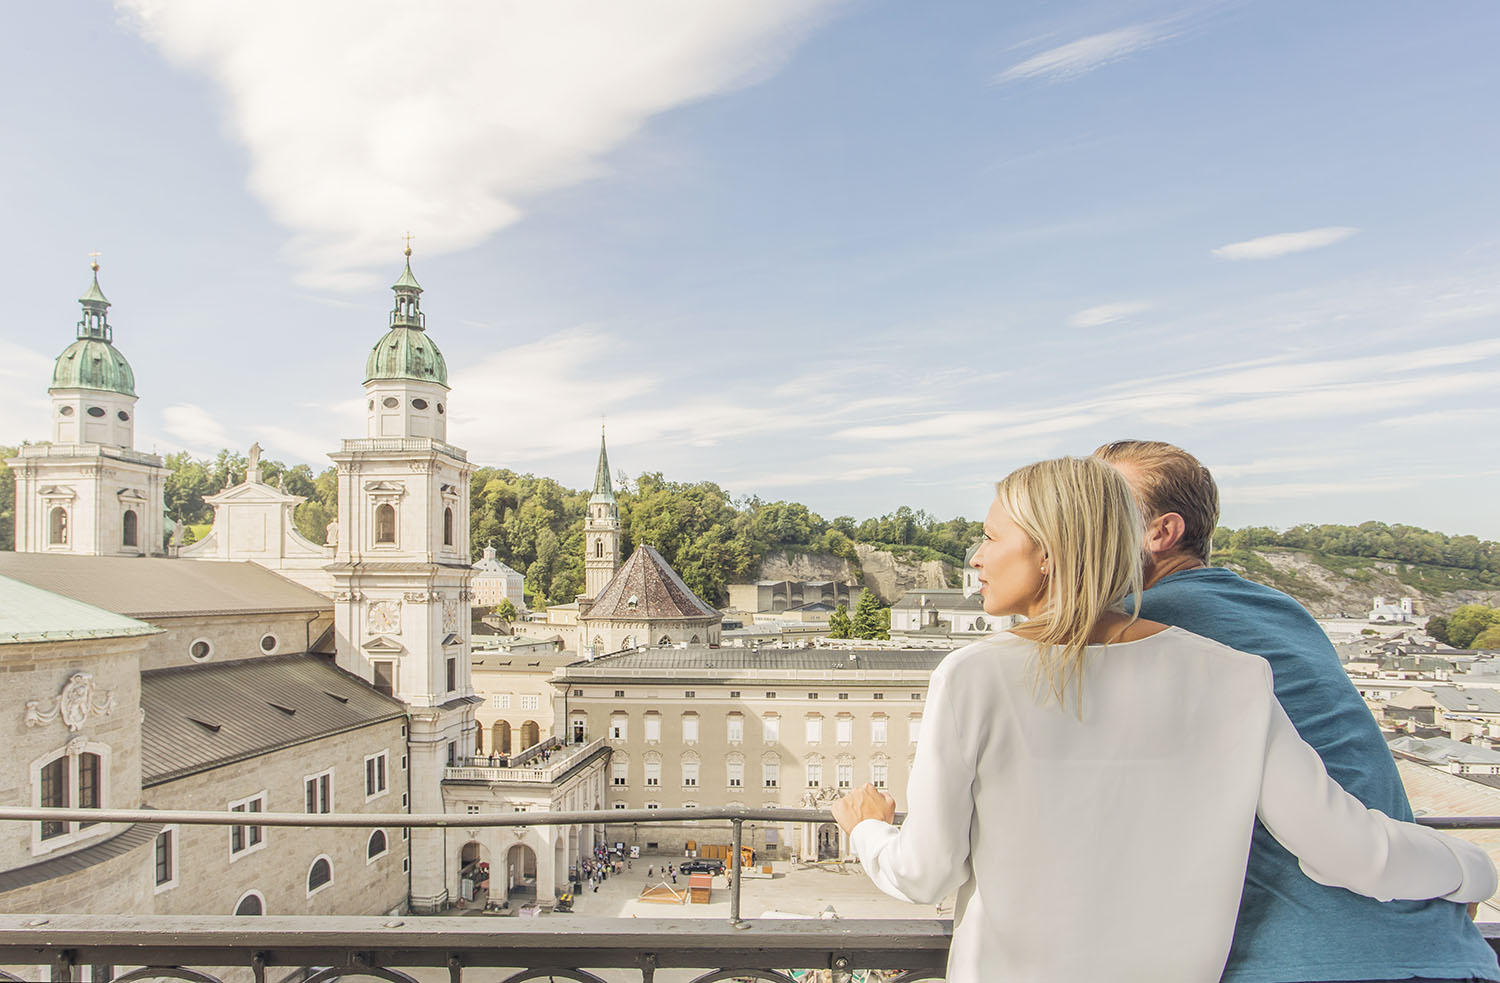 Sightseeing in Salzburg - the city of Mozart awaits culture fans with a wealth of discoveries